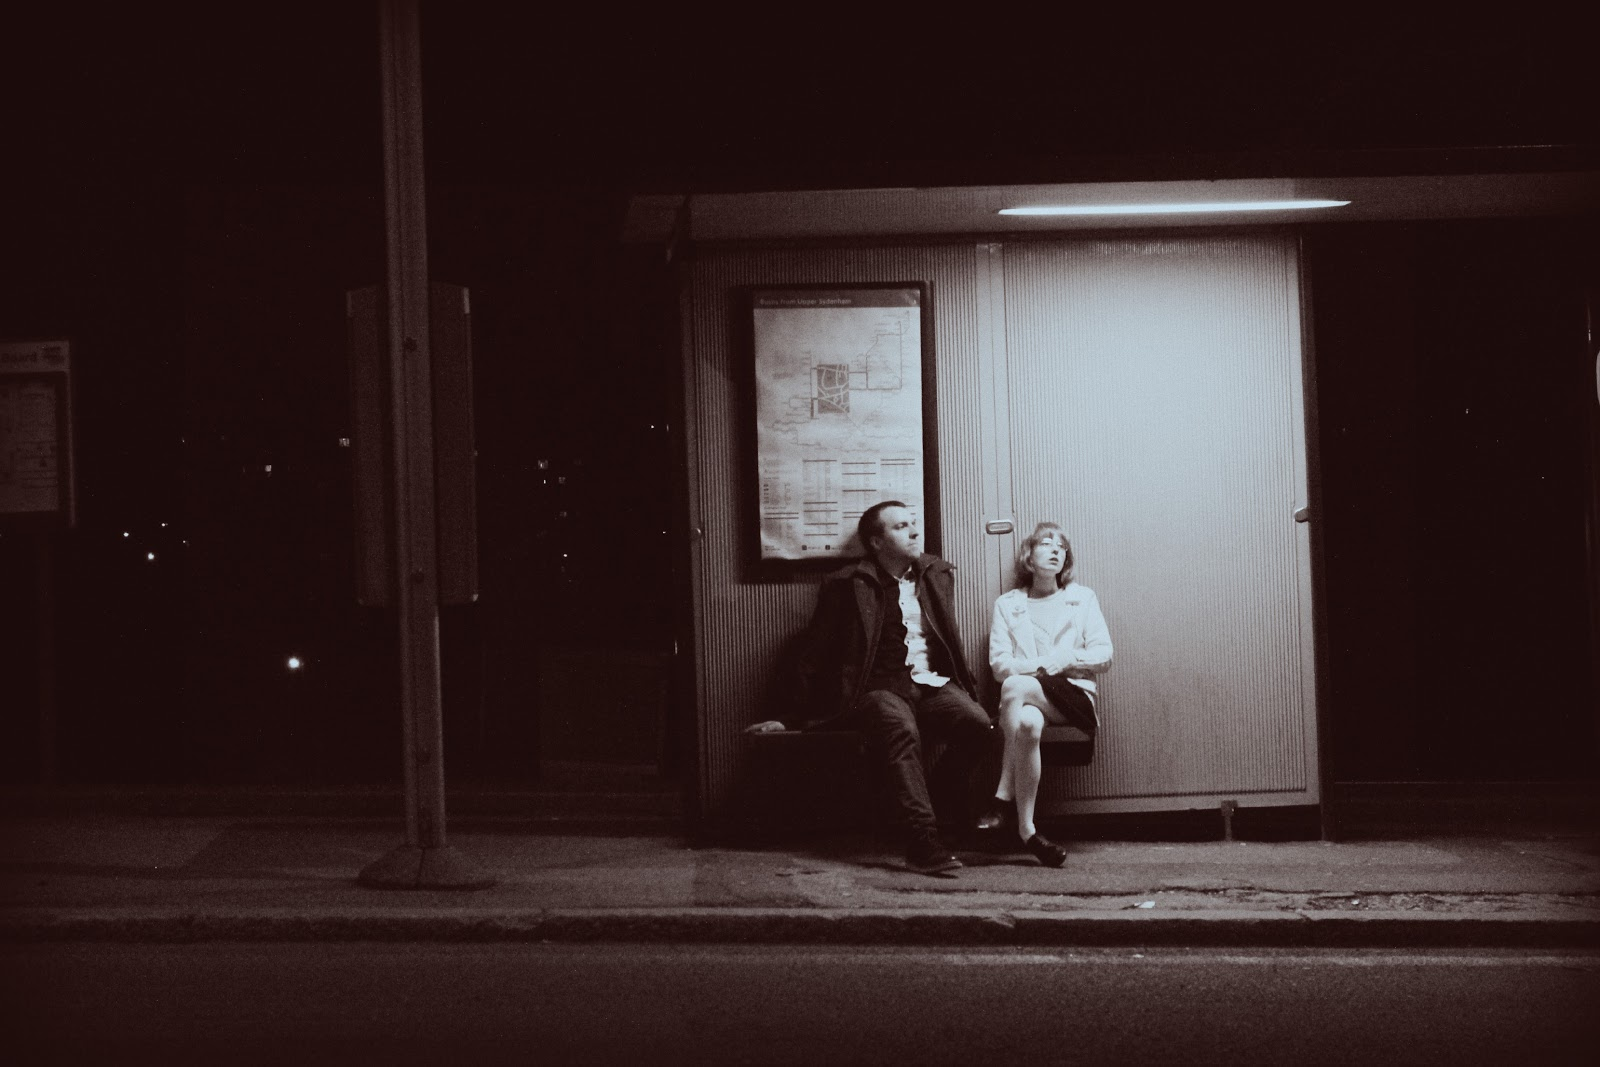 Rescue A Family - A man and woman sit at a bus stop. The scene is deserted and they look bored.